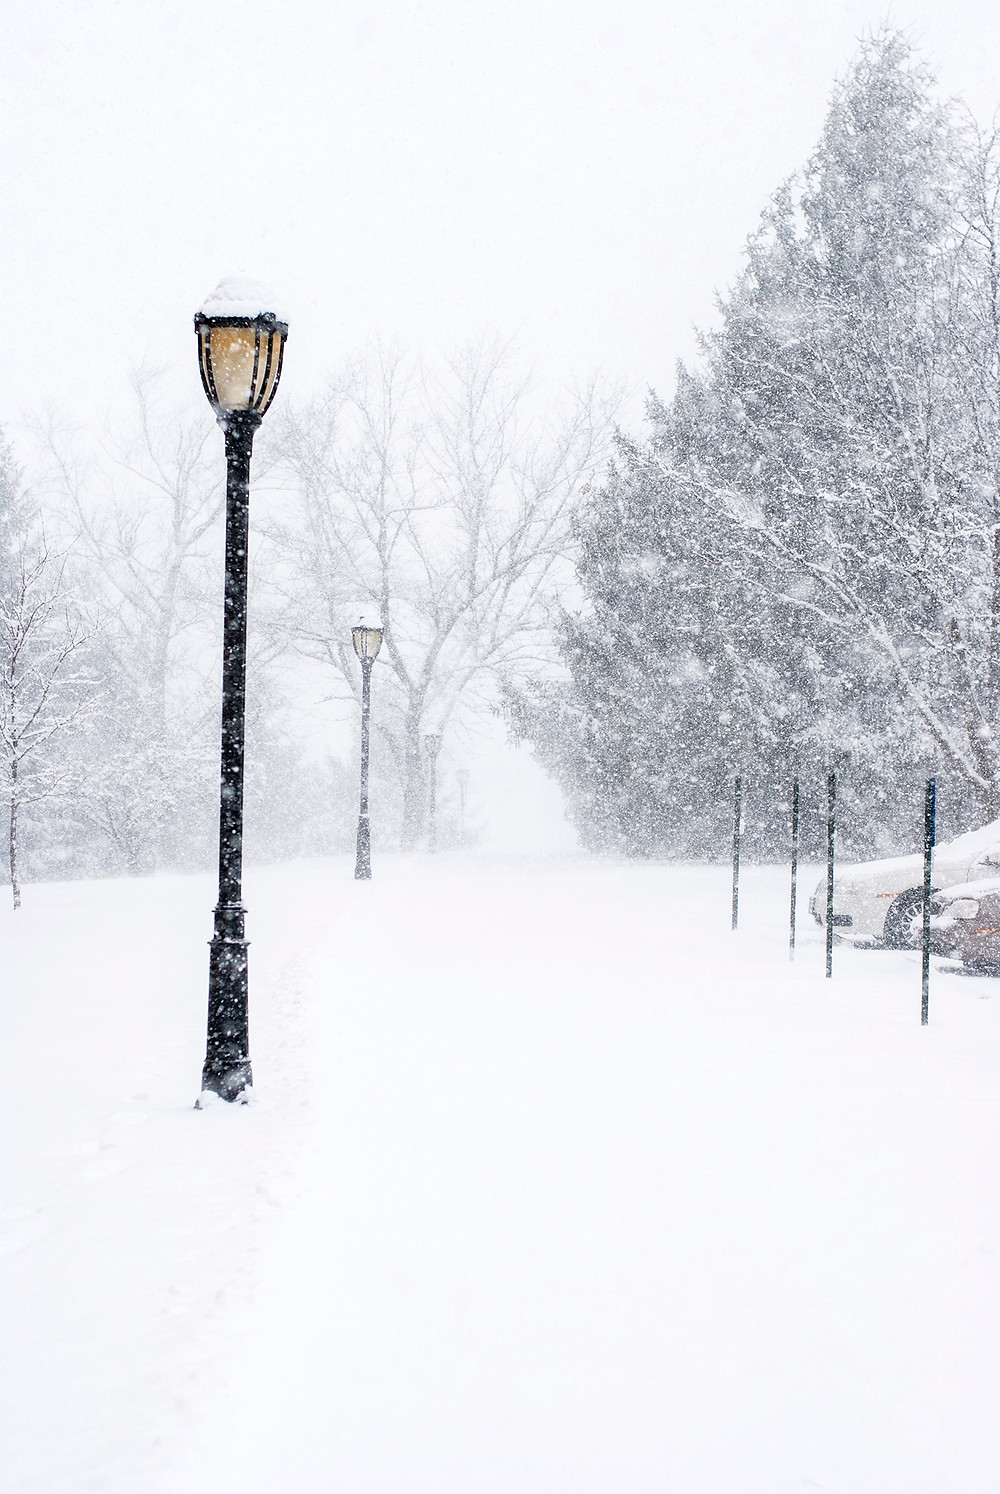 Lamppost and sidewalk in heavy snowfall